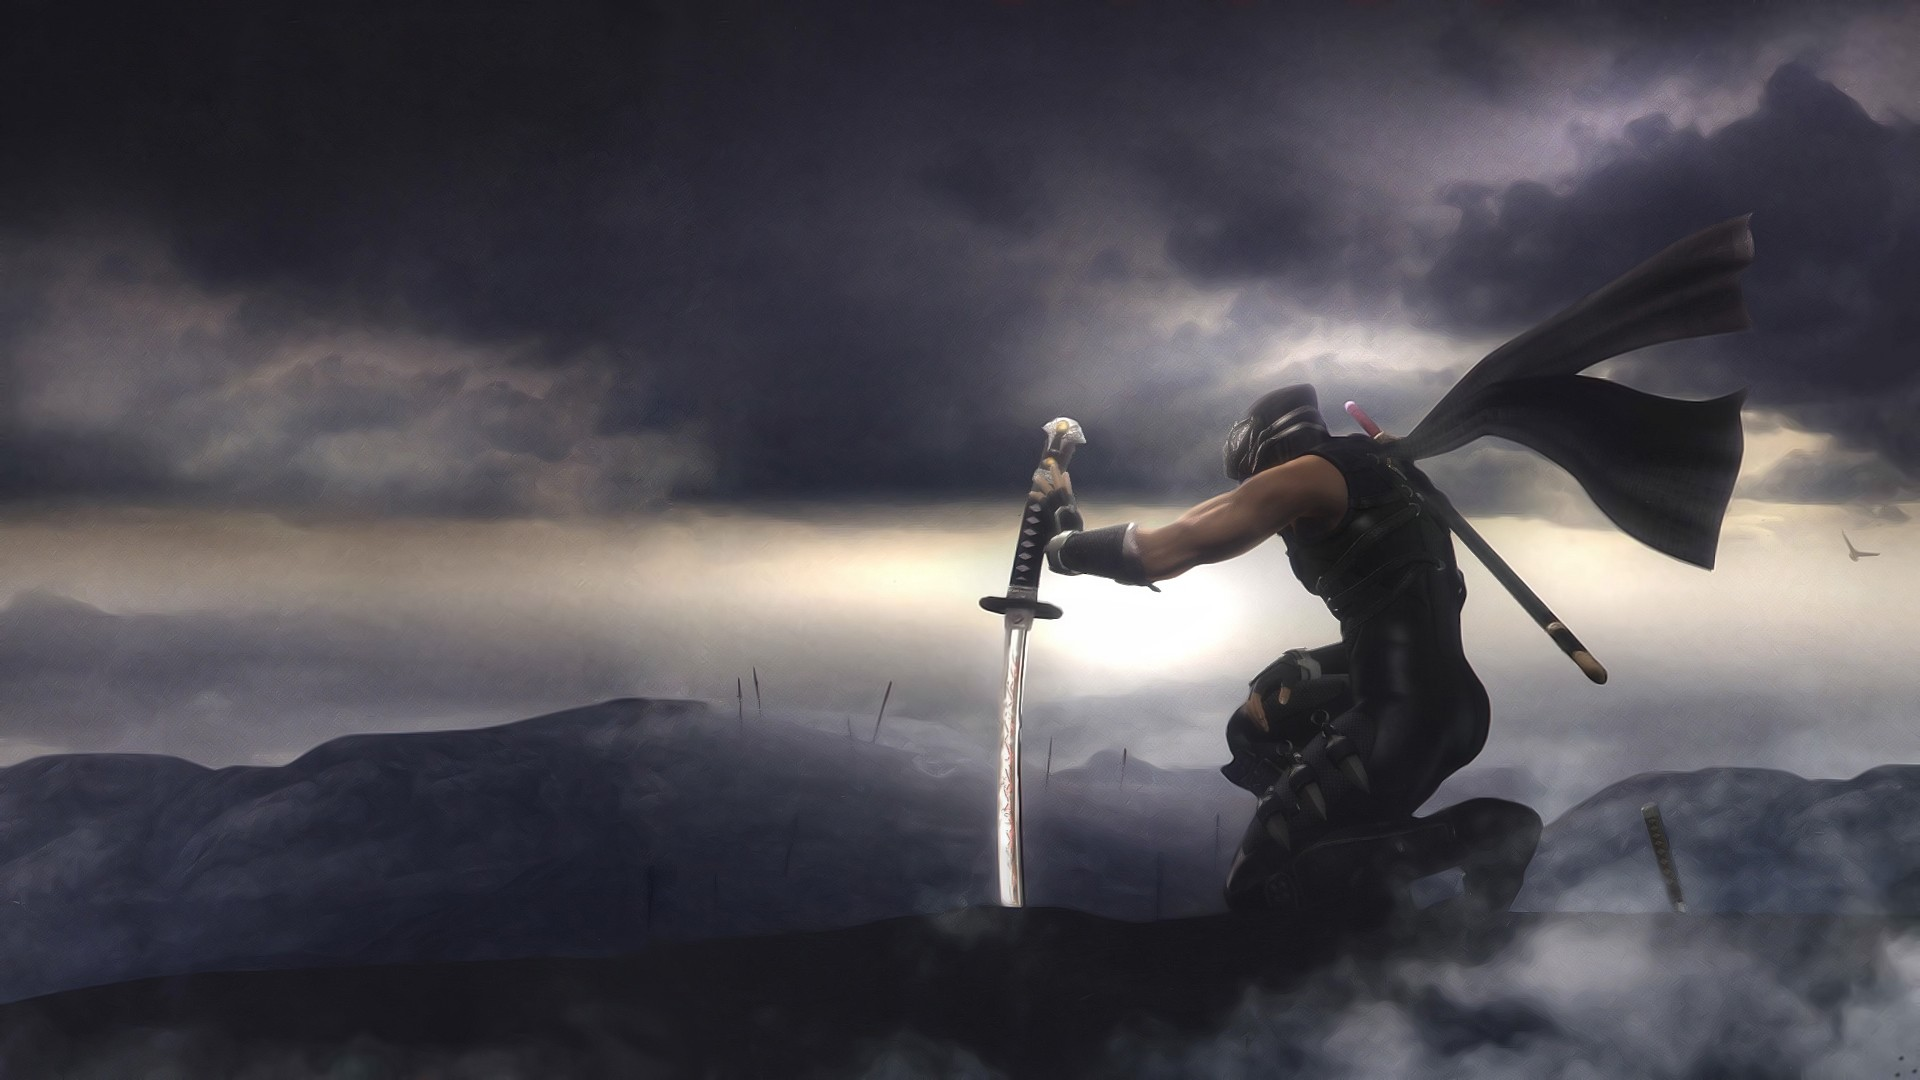 ninja gaiden wallpapers for desktop - photo #5